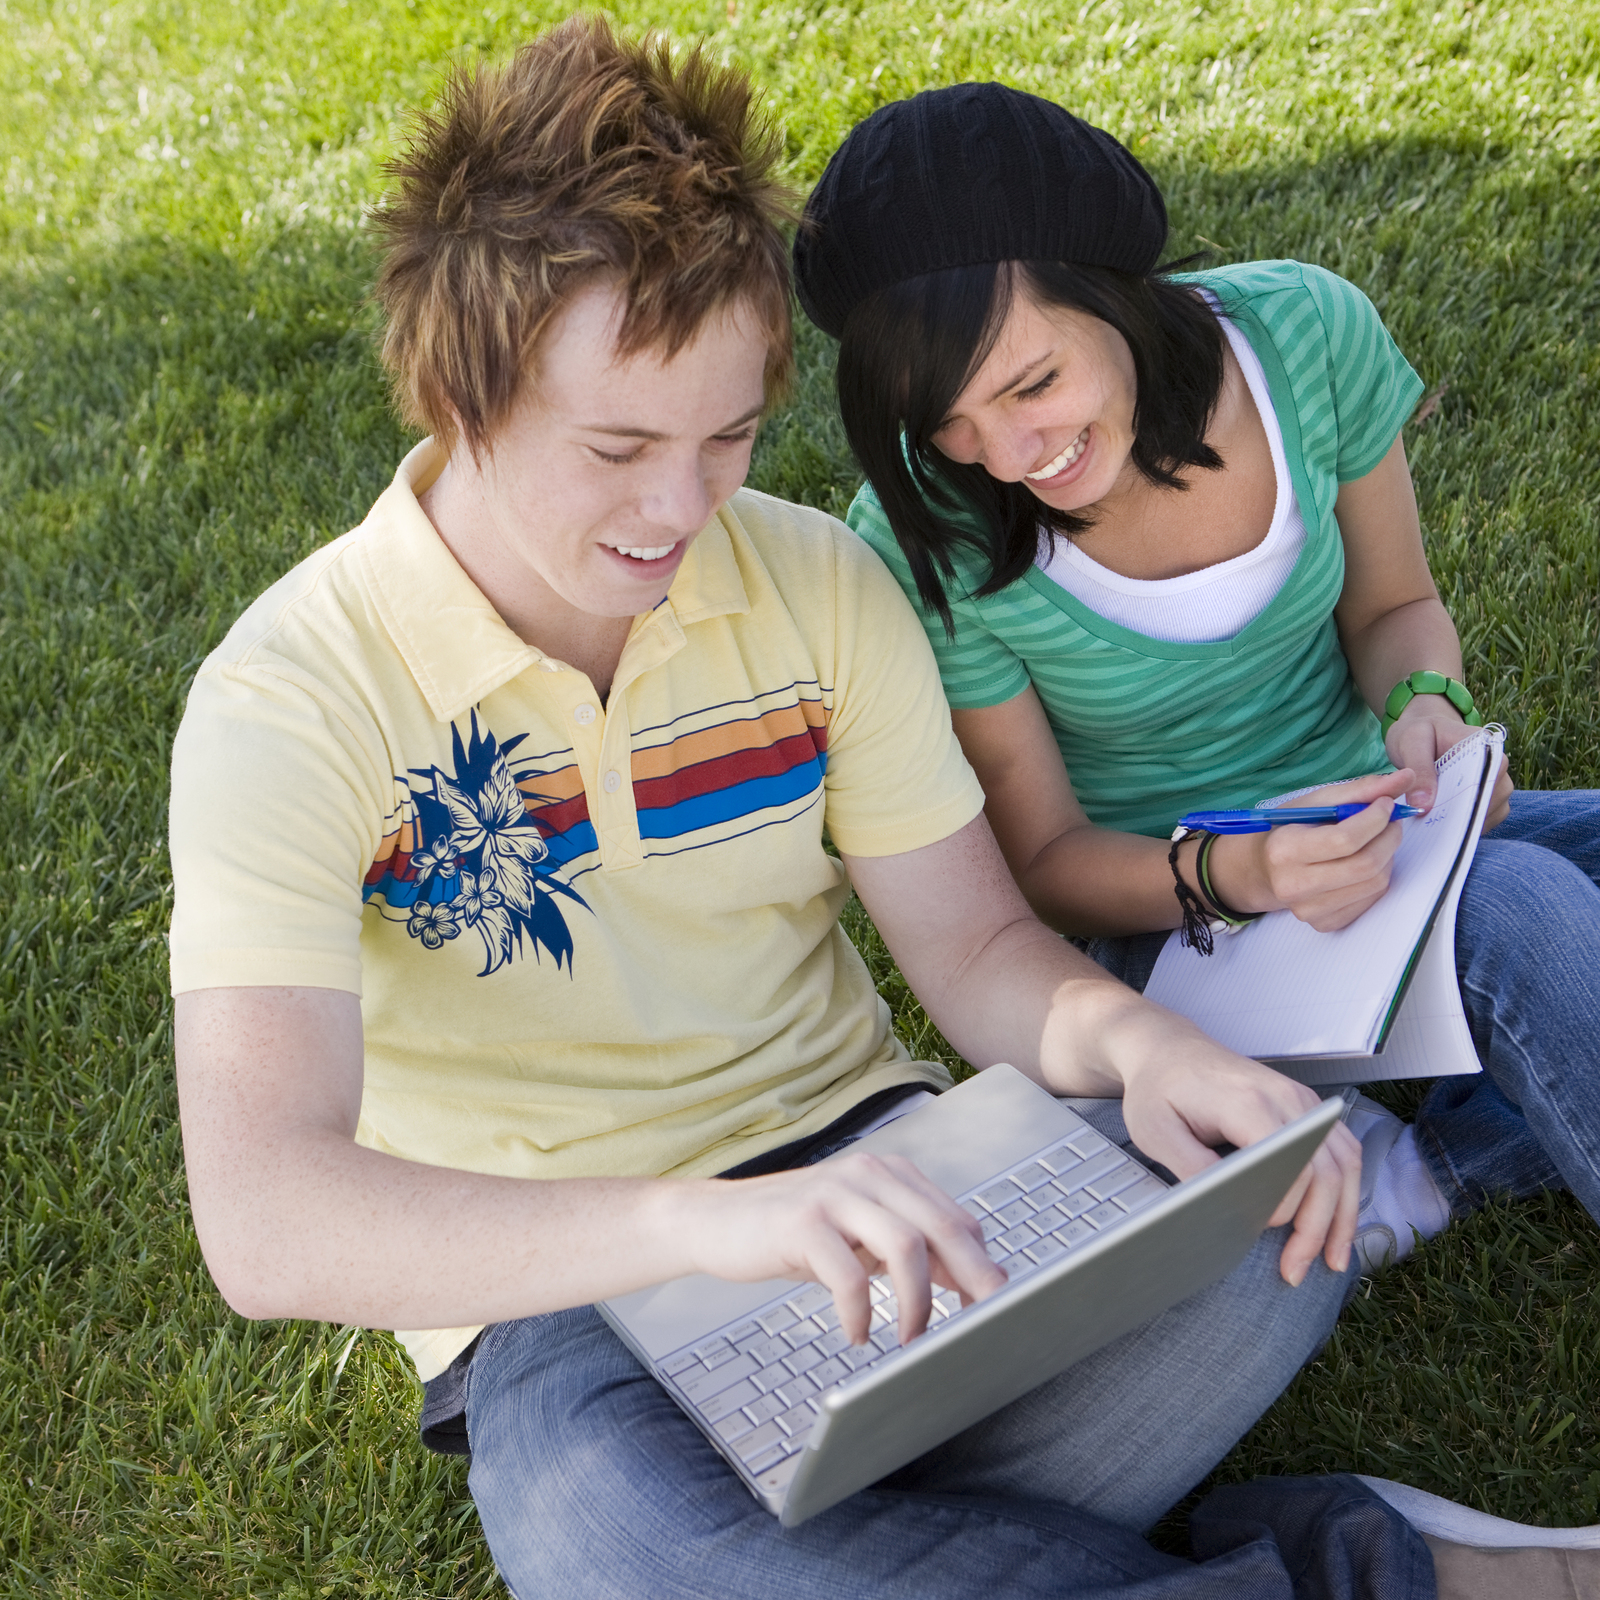 5 tips for helping teens develop healthy relationships